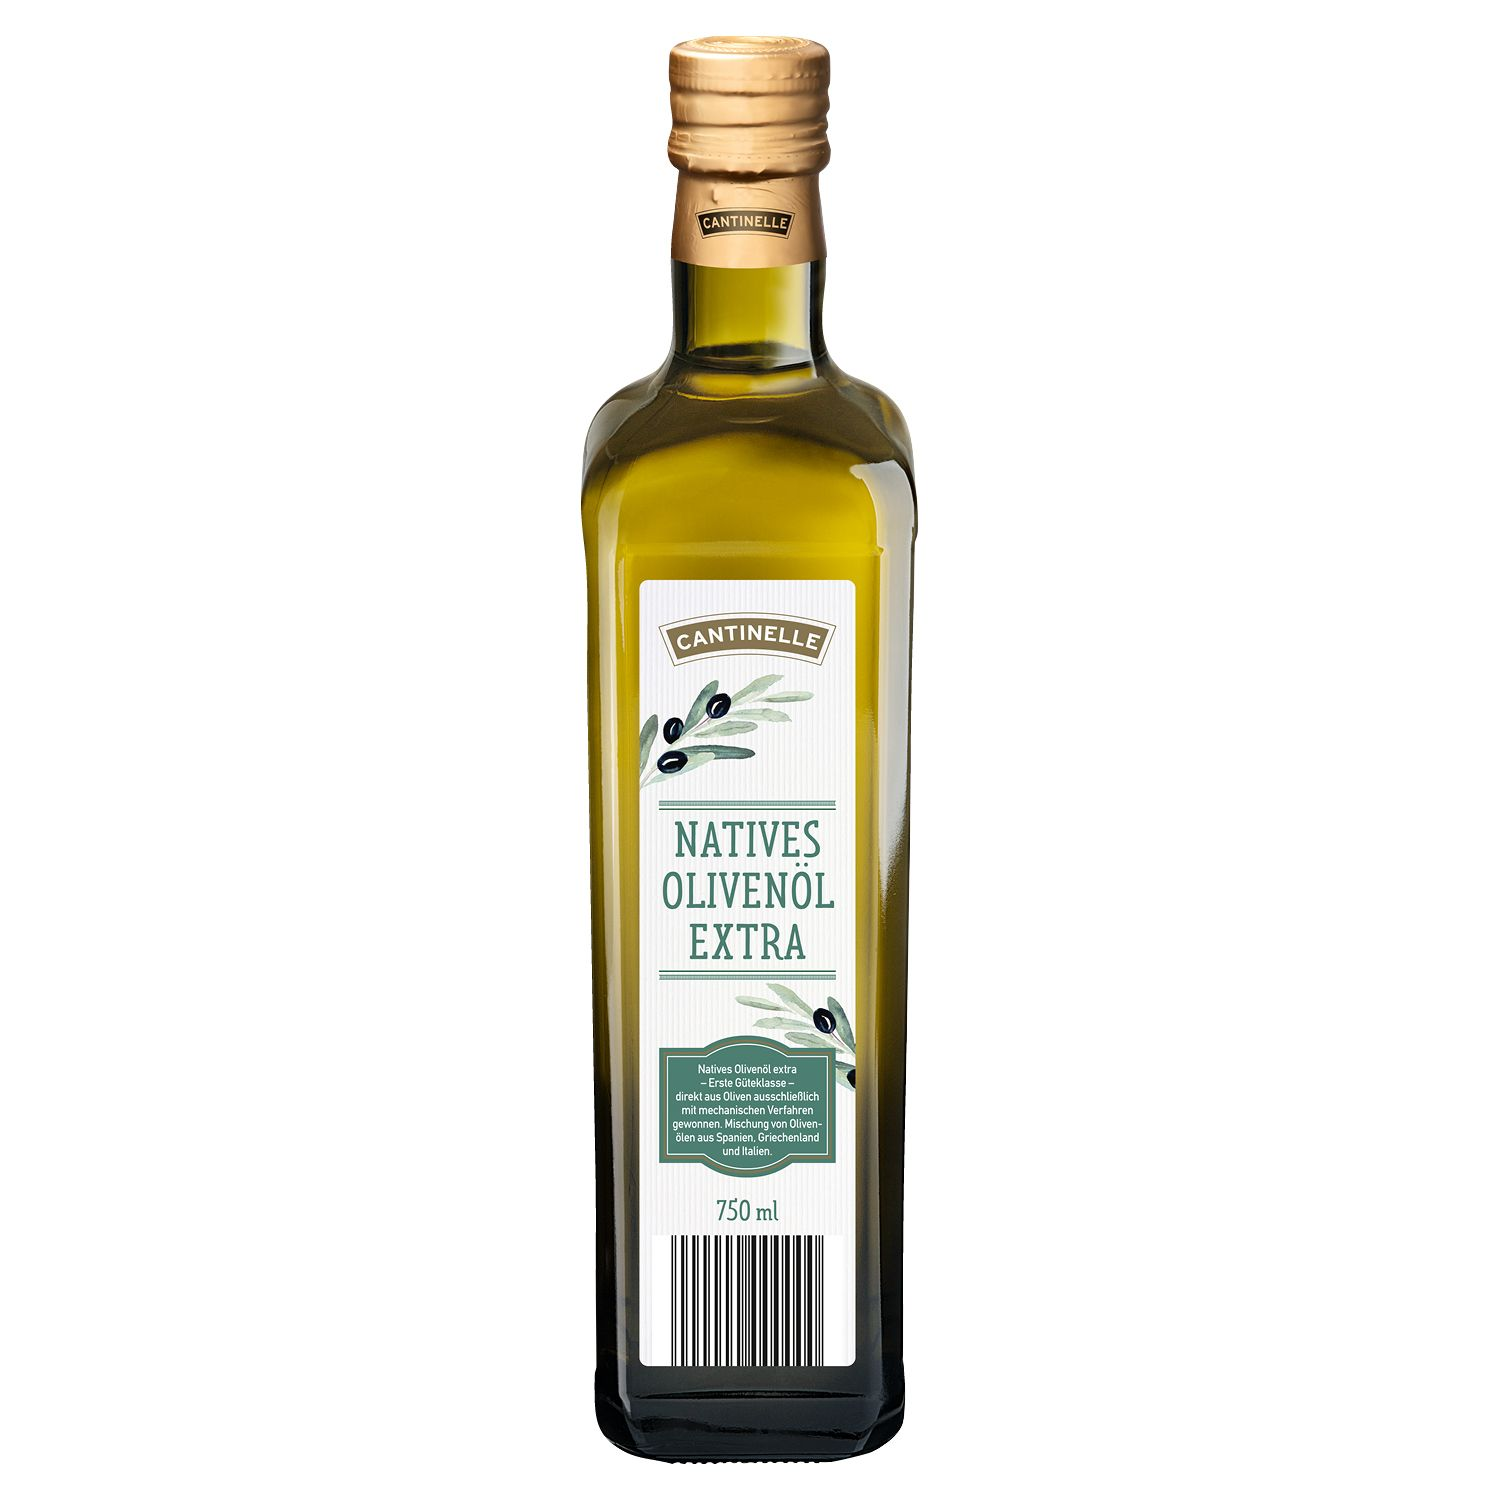 Cantinelle Natives Olivenöl extra 750 ml